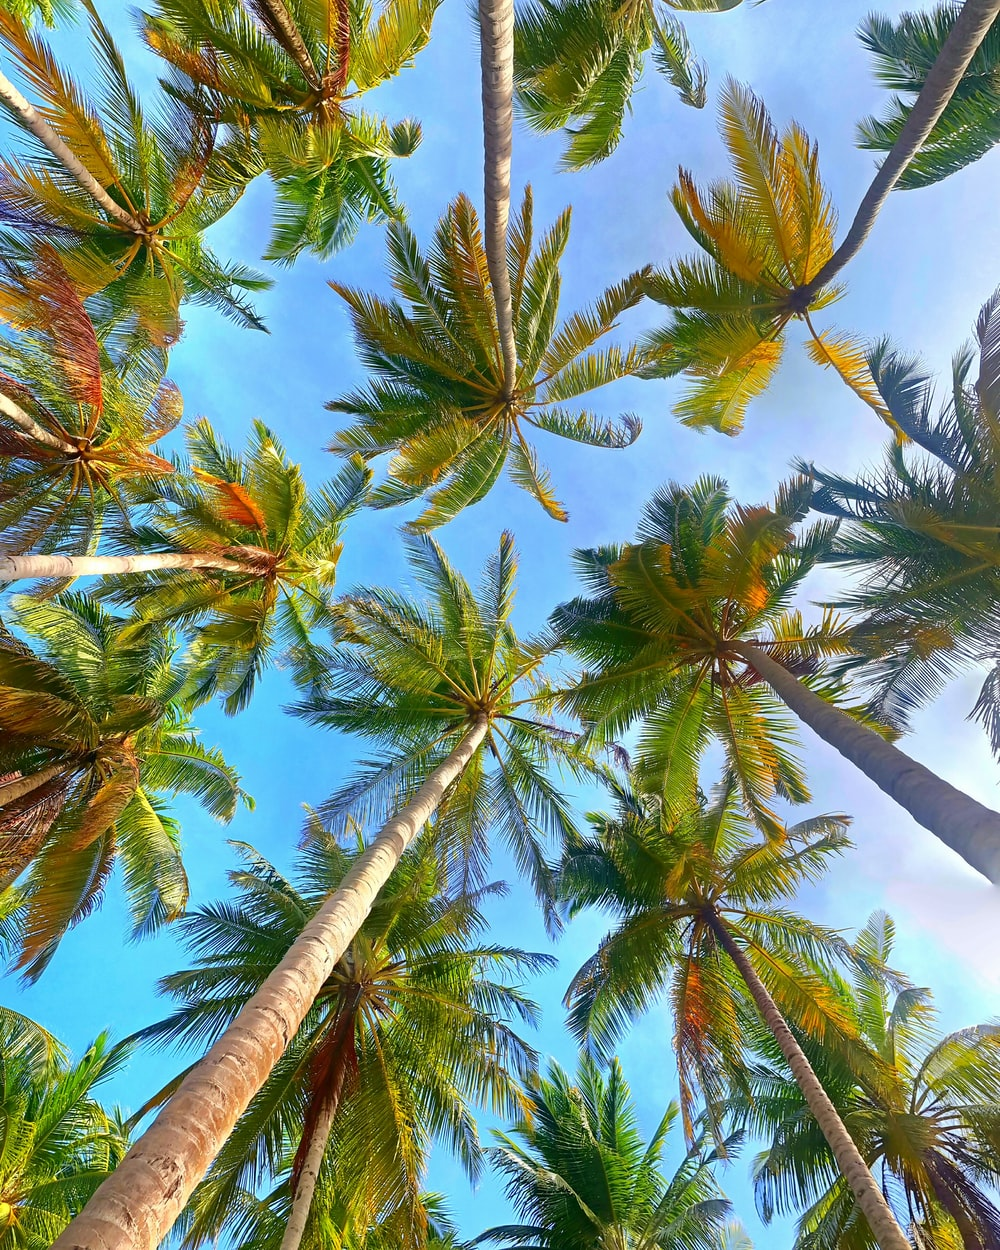 low angle of coconut trees under blue sky